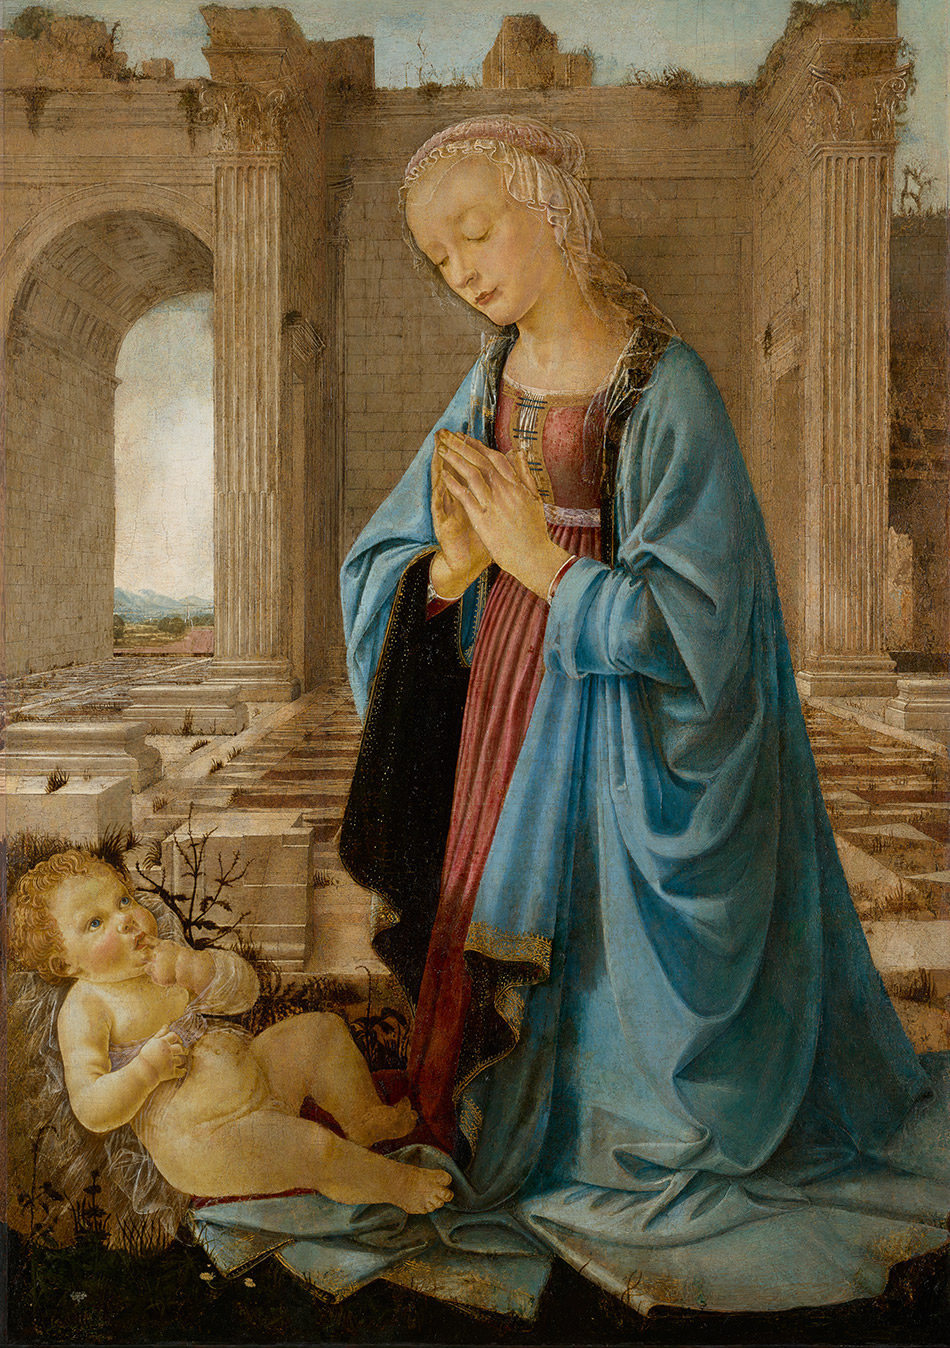 Andrea-del-Verrocchio-and-Domenico-Ghirlandaio_The-Virgin-Adoring-the-Christ-Child_950-W